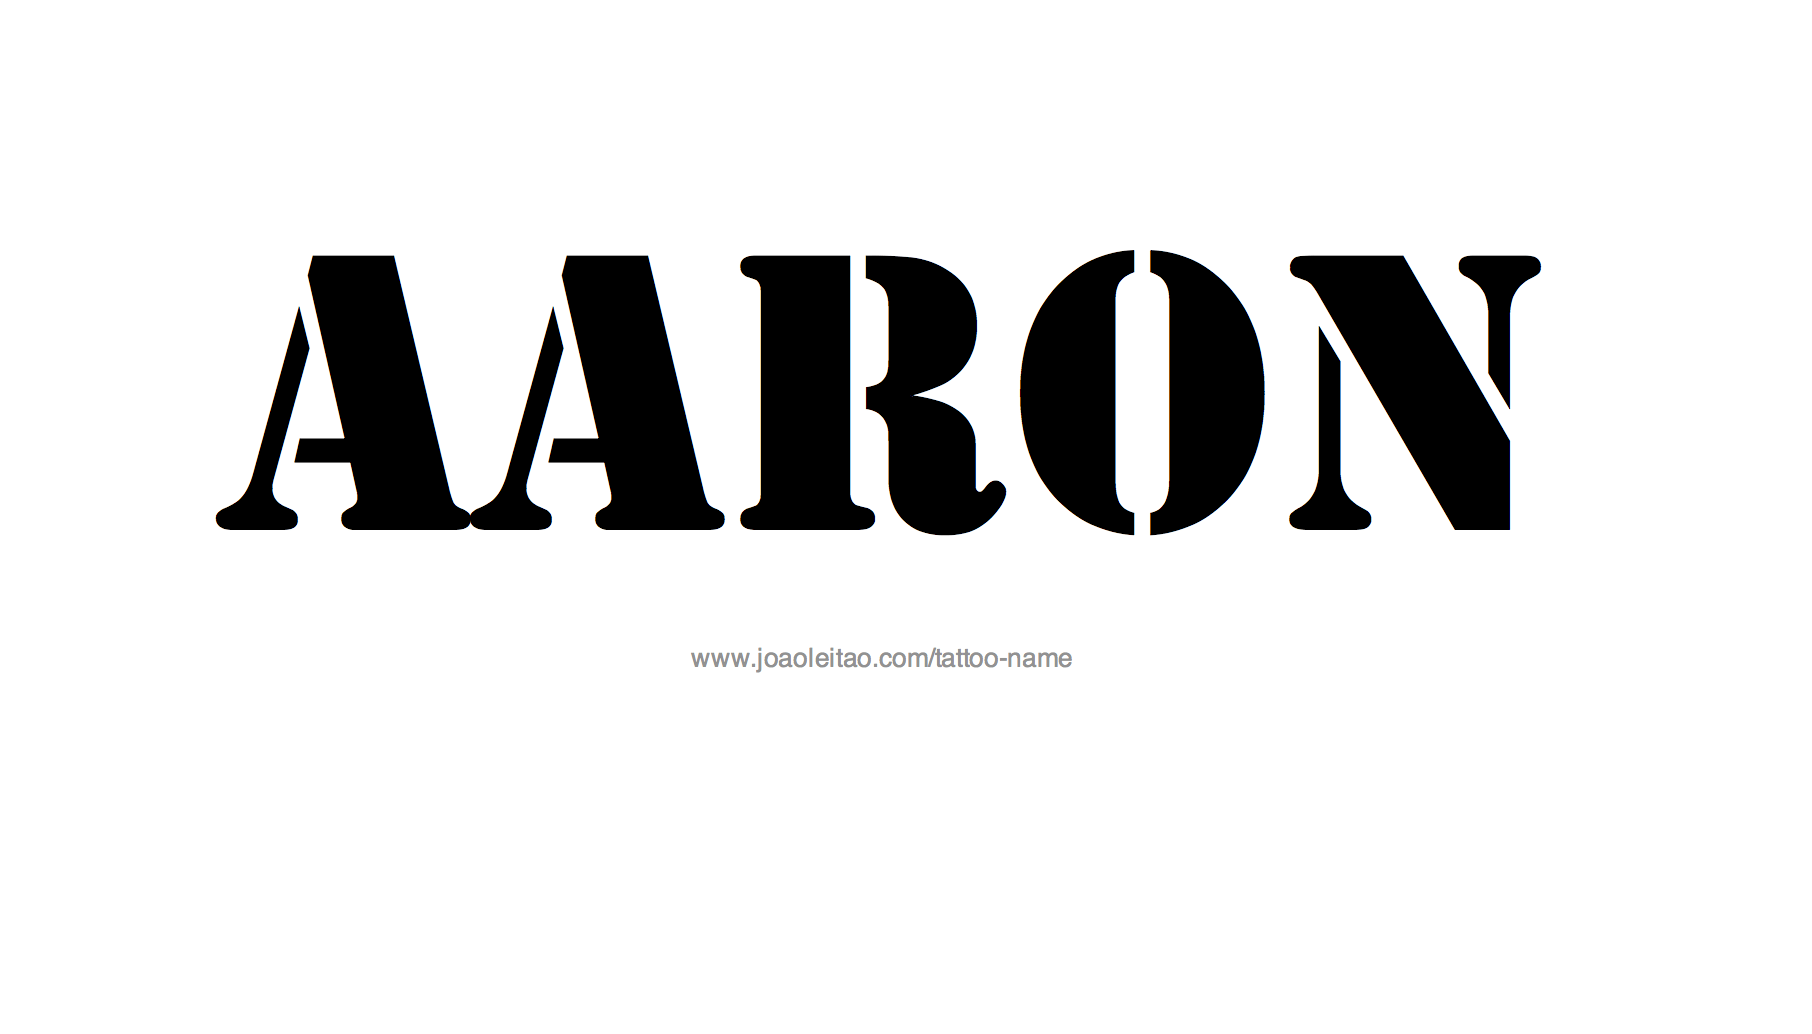 Aaron Name Tattoo Designs Ideas And Designs